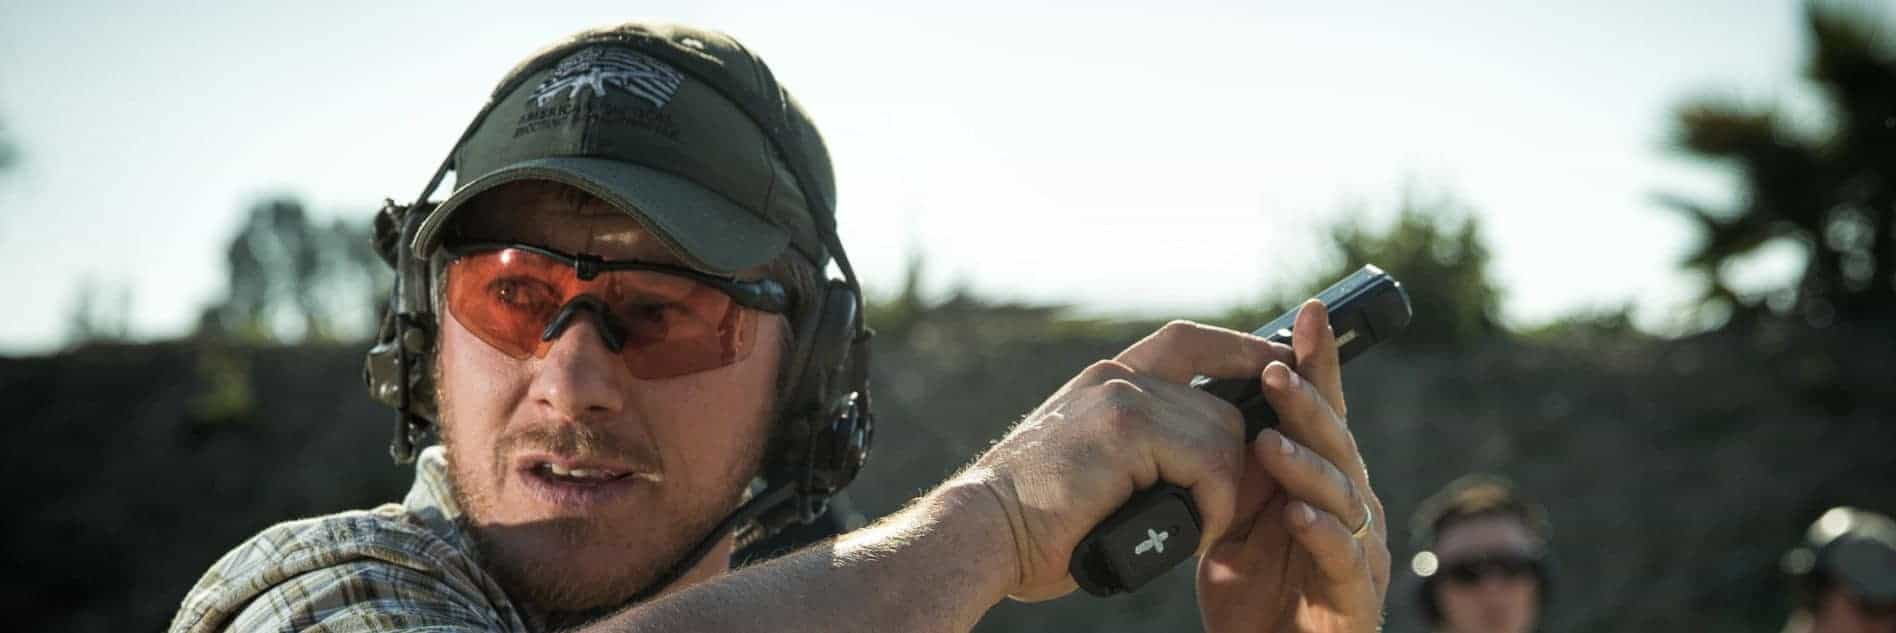 Upcoming Courses - Amtac Shooting